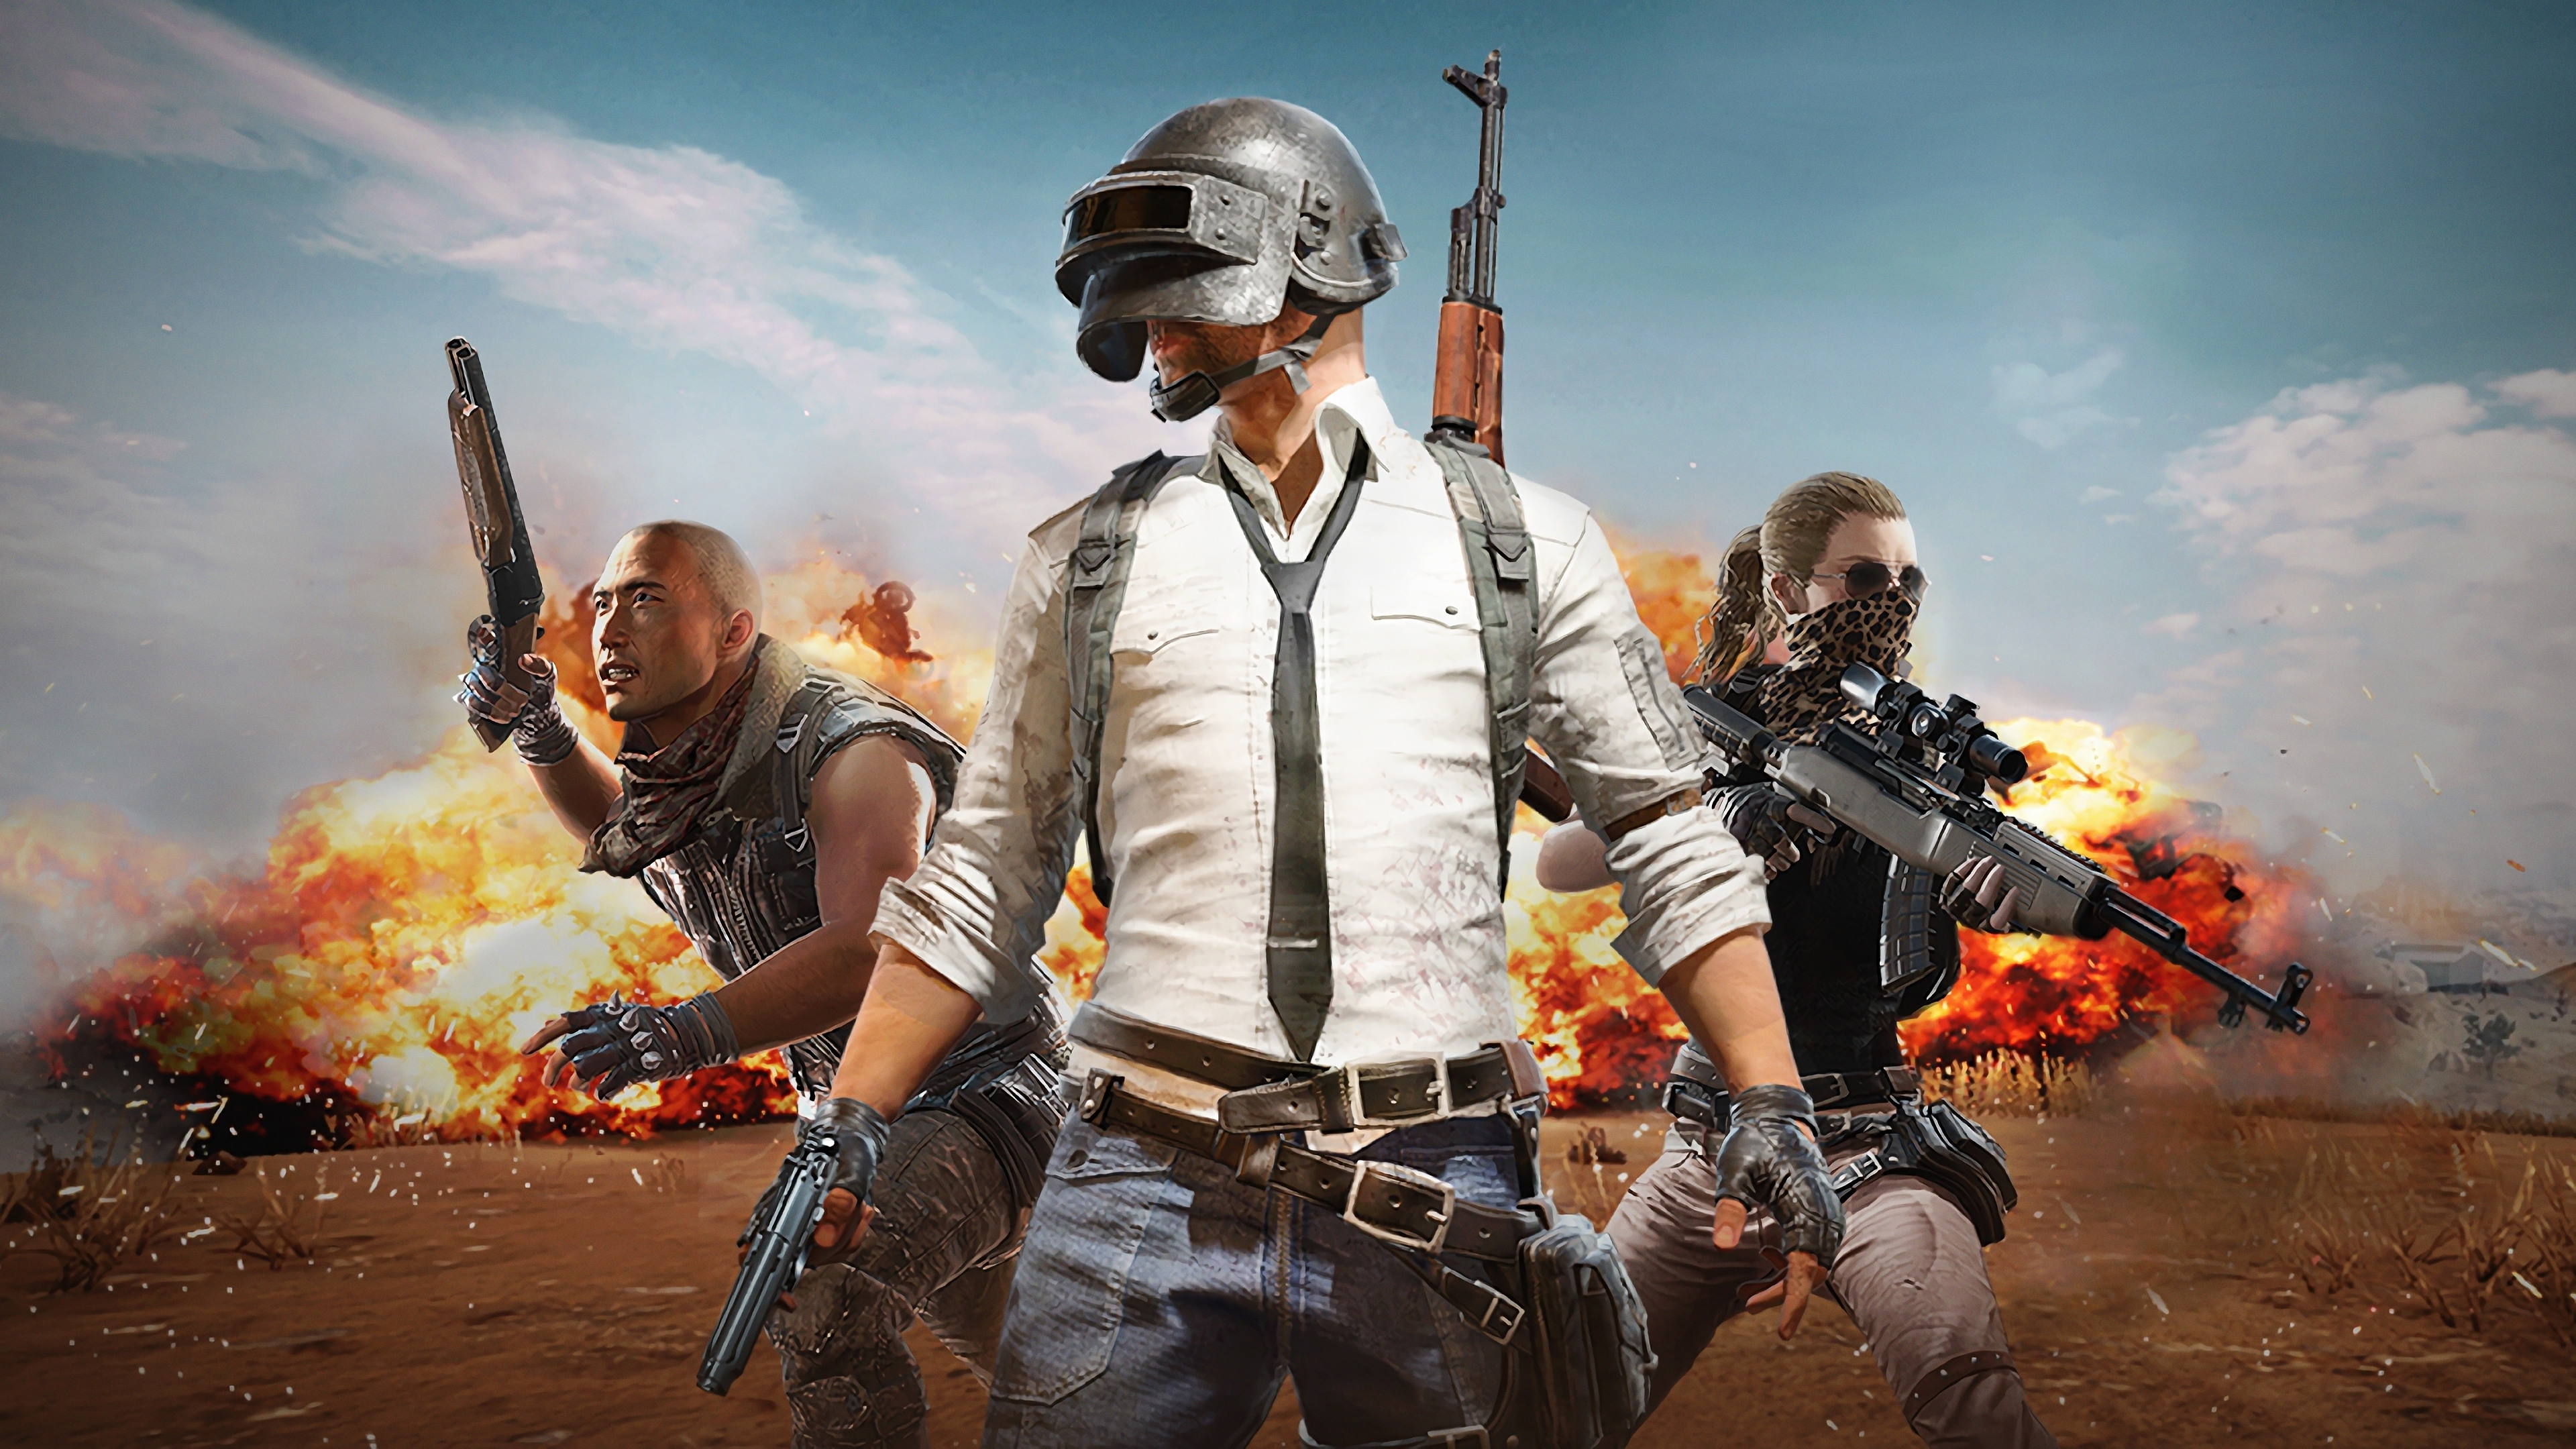 PlayerUnknowns Battlegrounds PUBG 4K 8K HD Wallpaper 3840x2160